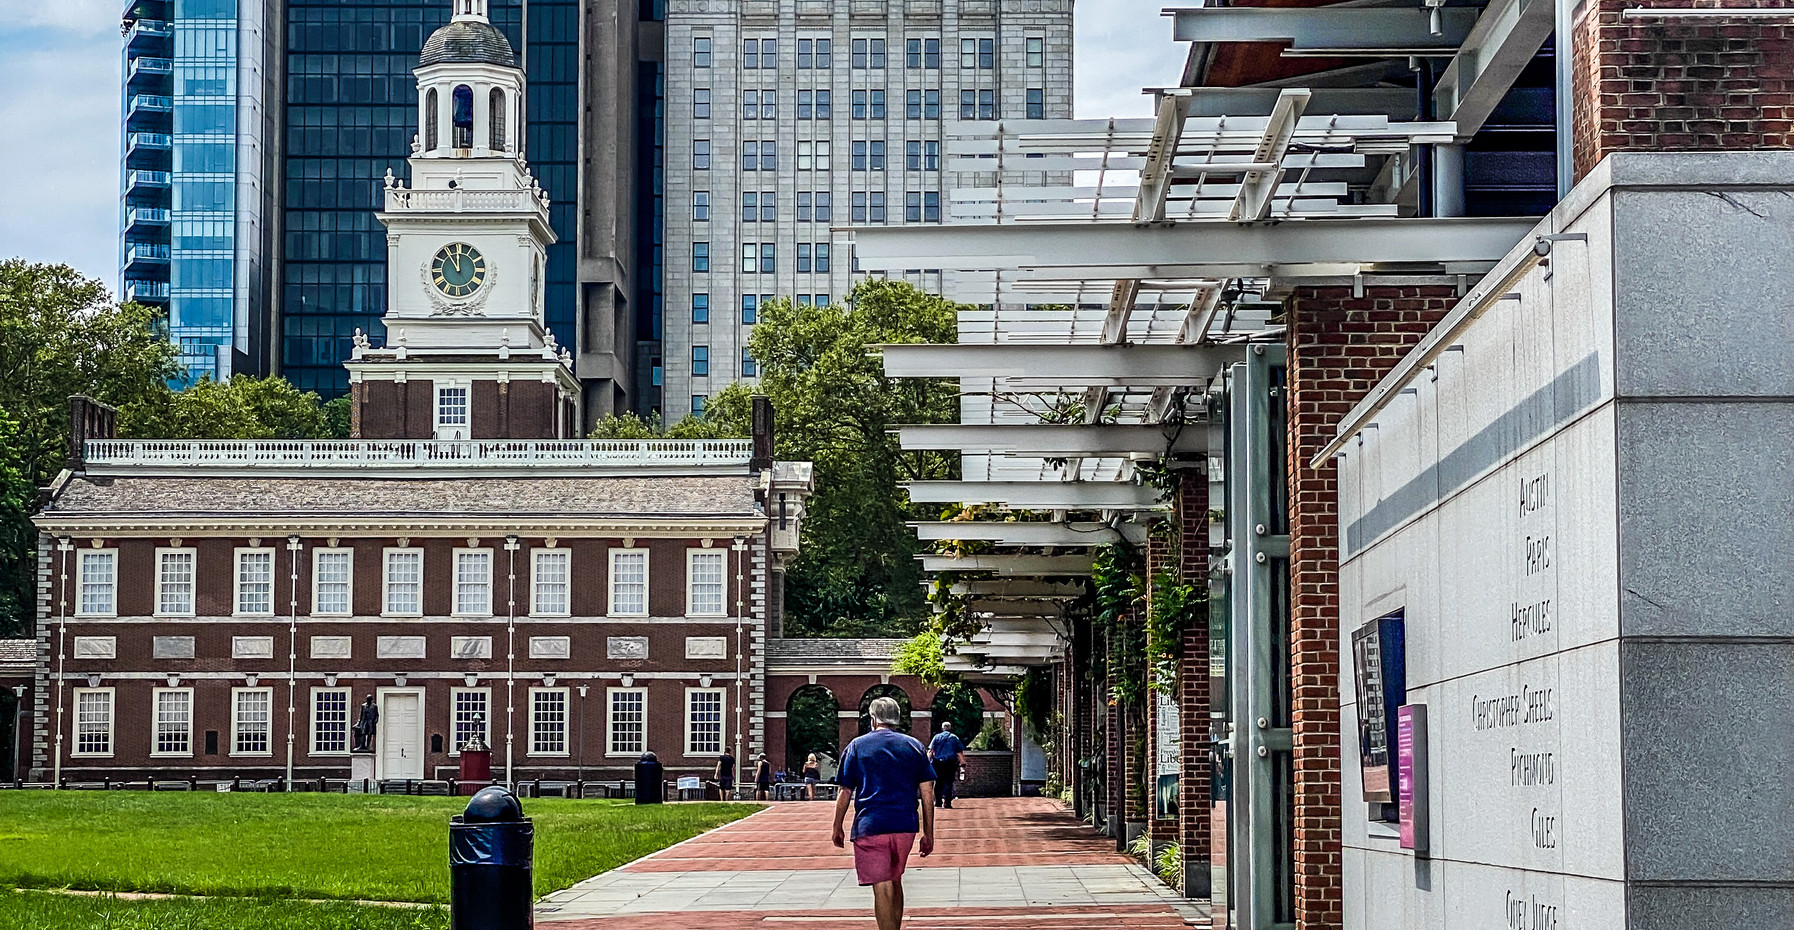 Independence Hall Walkway